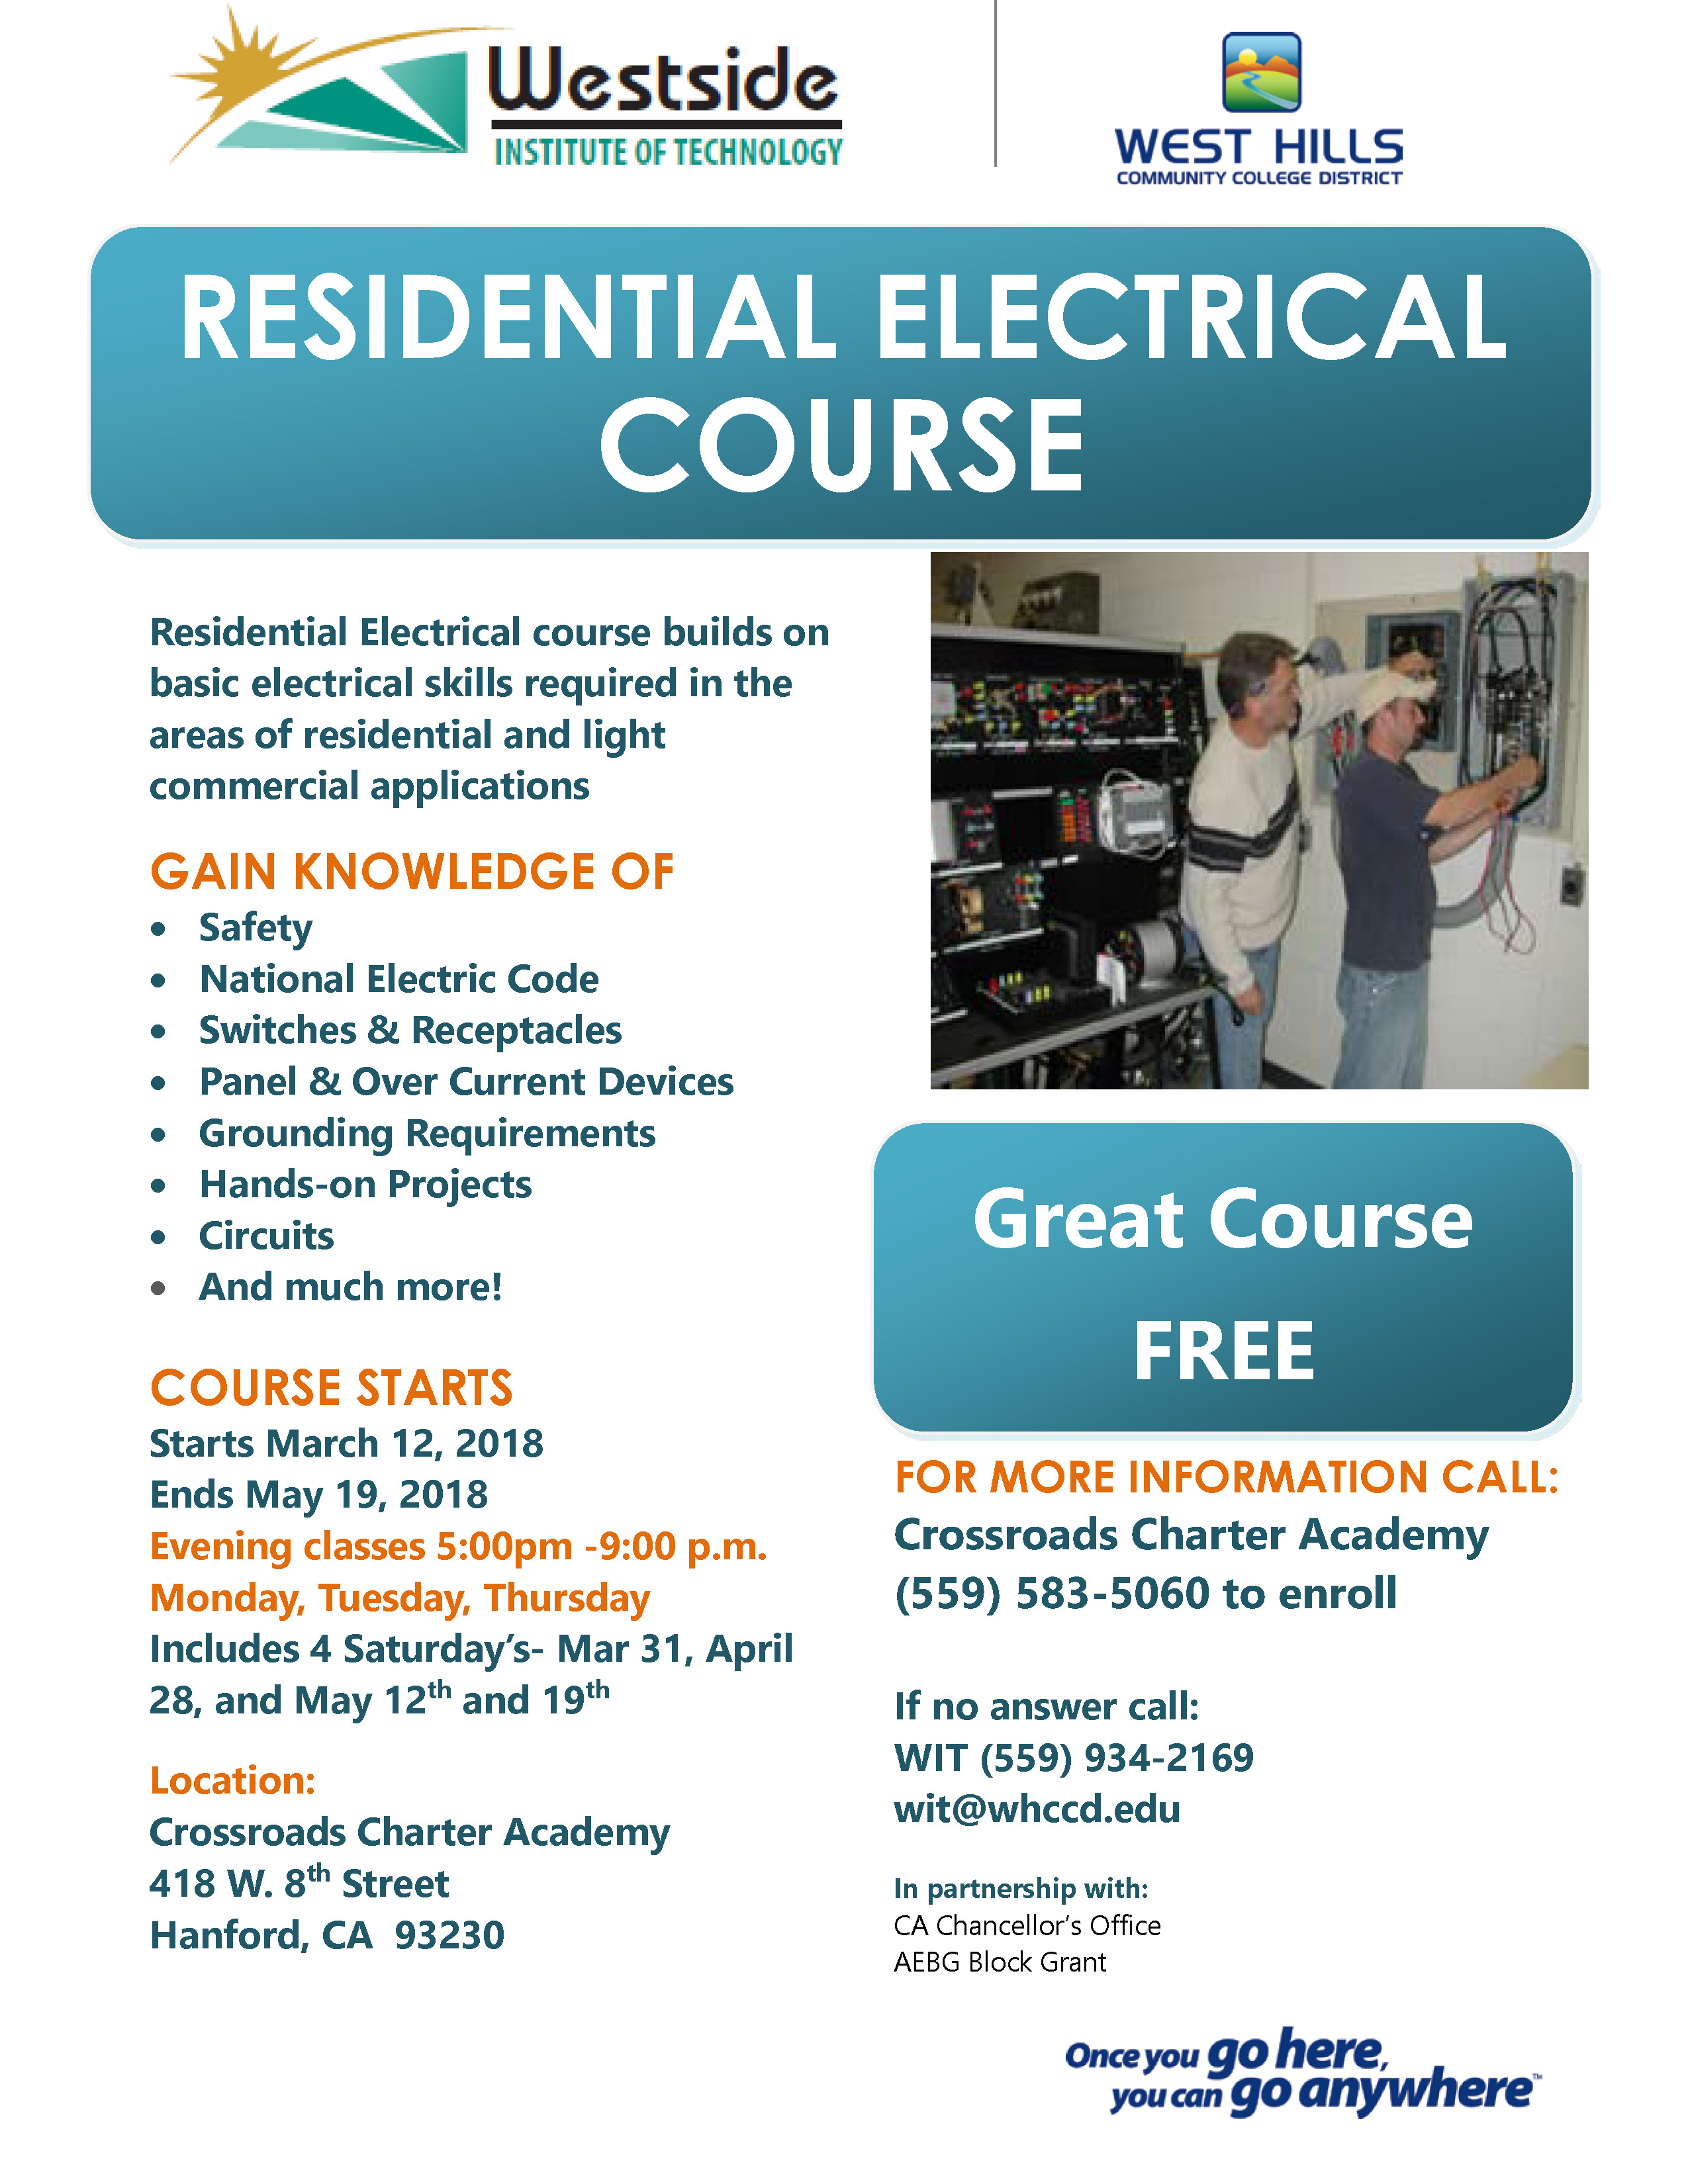 Residential Electric Courses Now Enrolling